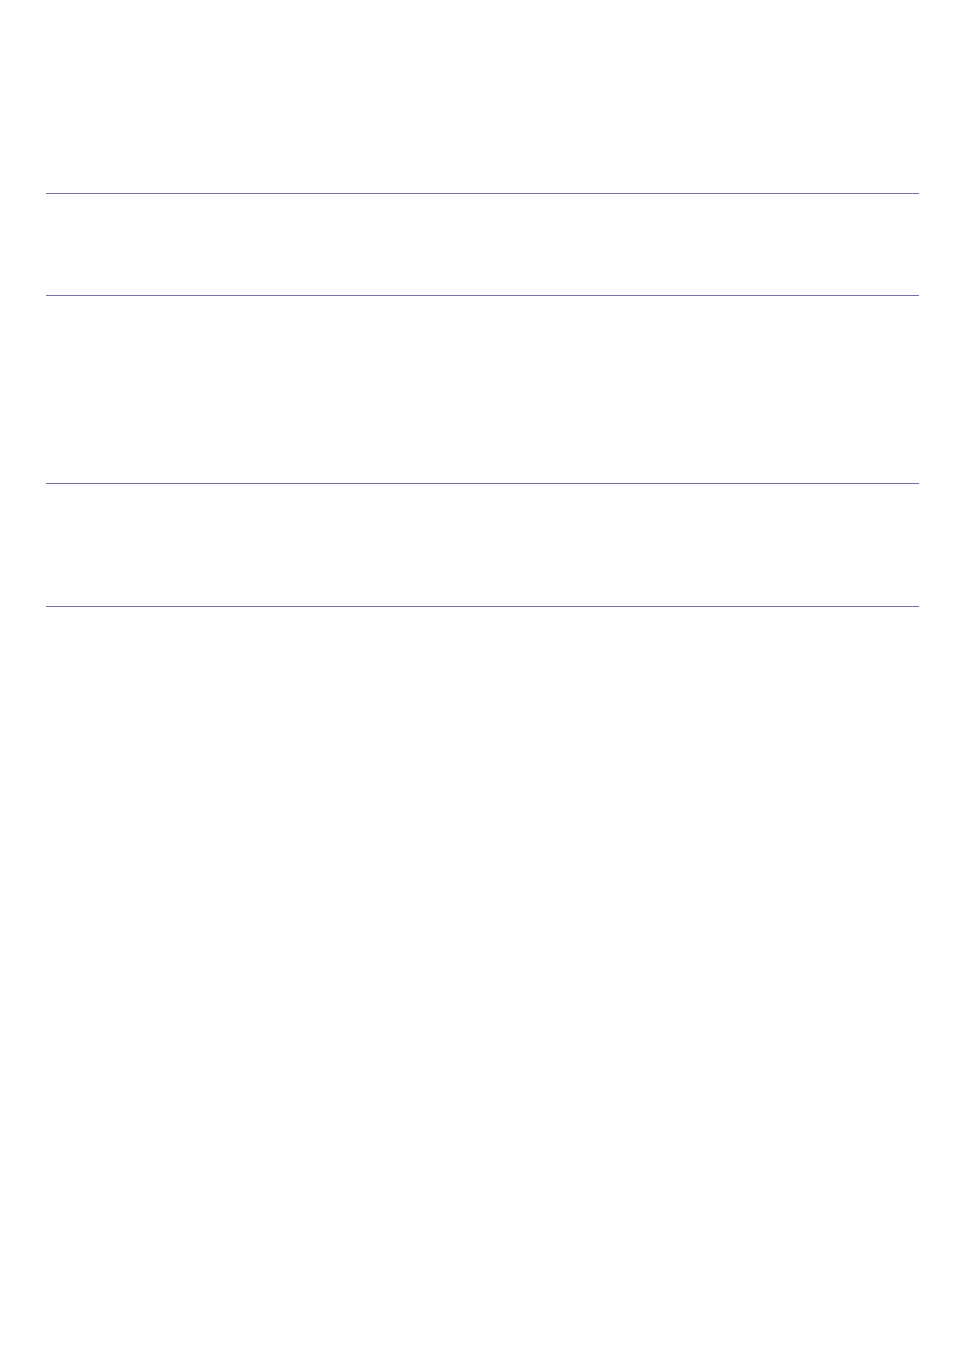 Using the unified linux driver configurator, Using the dell